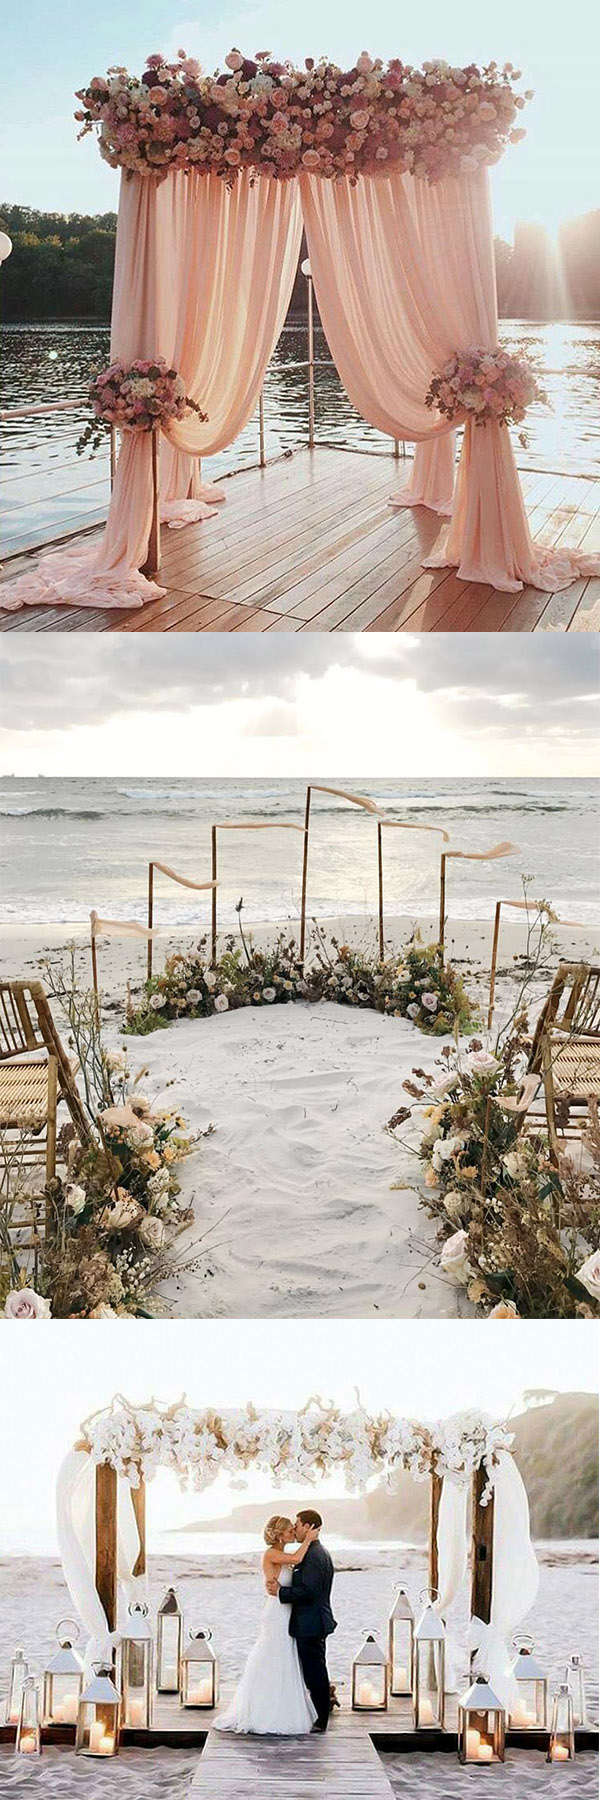 Stunning Beach & Seaside Wedding Arch Ideas